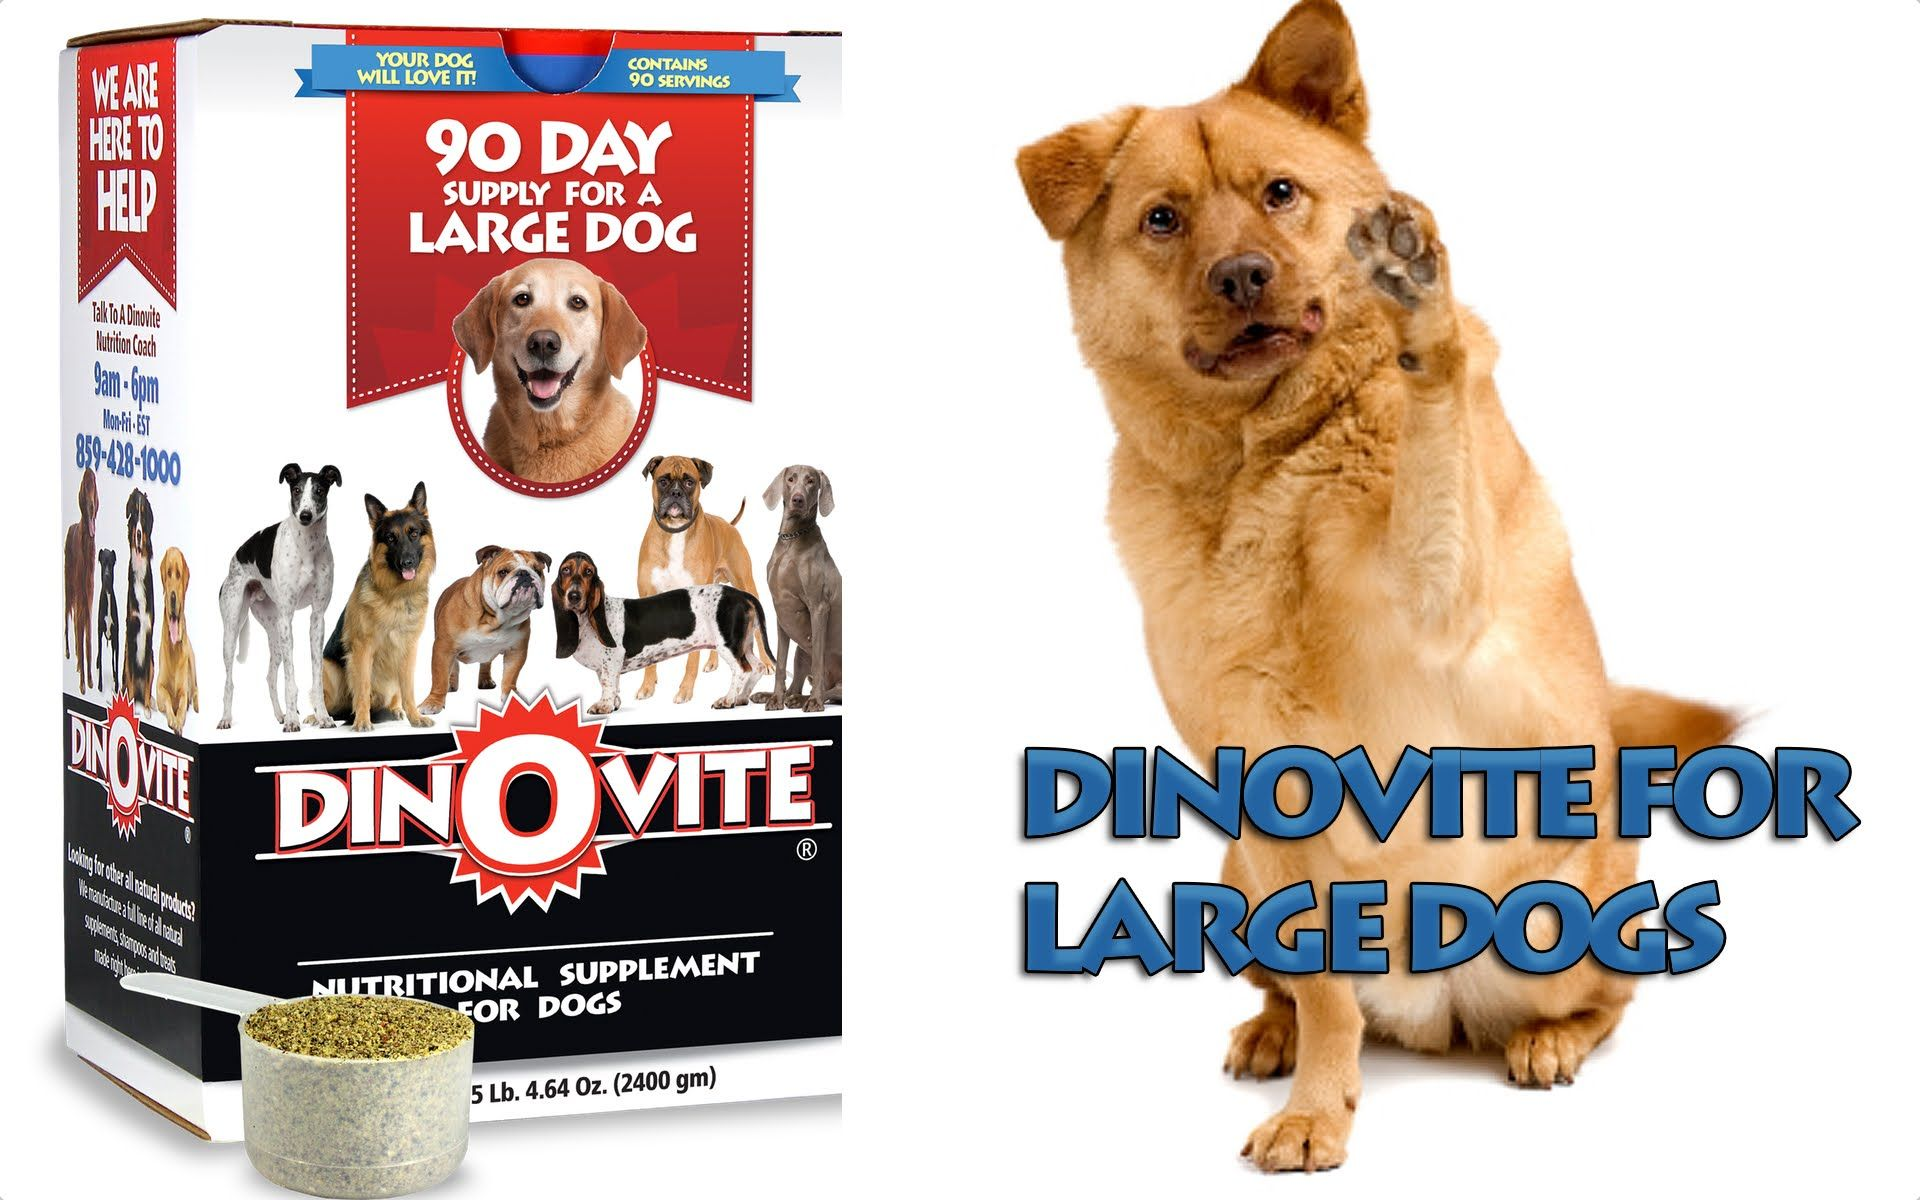 Dinovite For Large Dogs With Images Dogs Large Dogs Dog